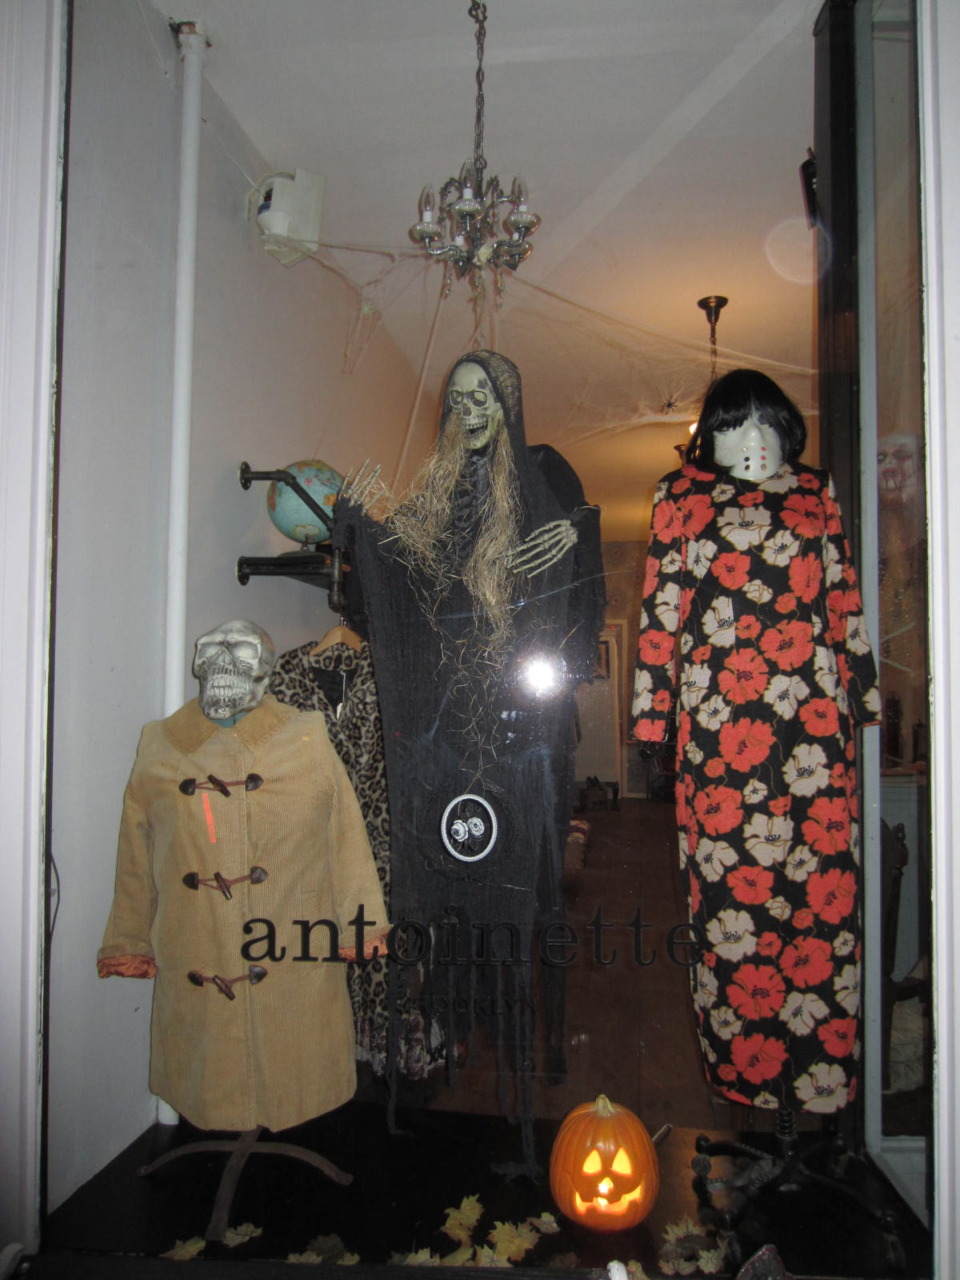 Halloween window for antoinette! In honor of this great holiday we will be open from 12-5pm so come get your shopping & trick or treating on! Happy Halloween!